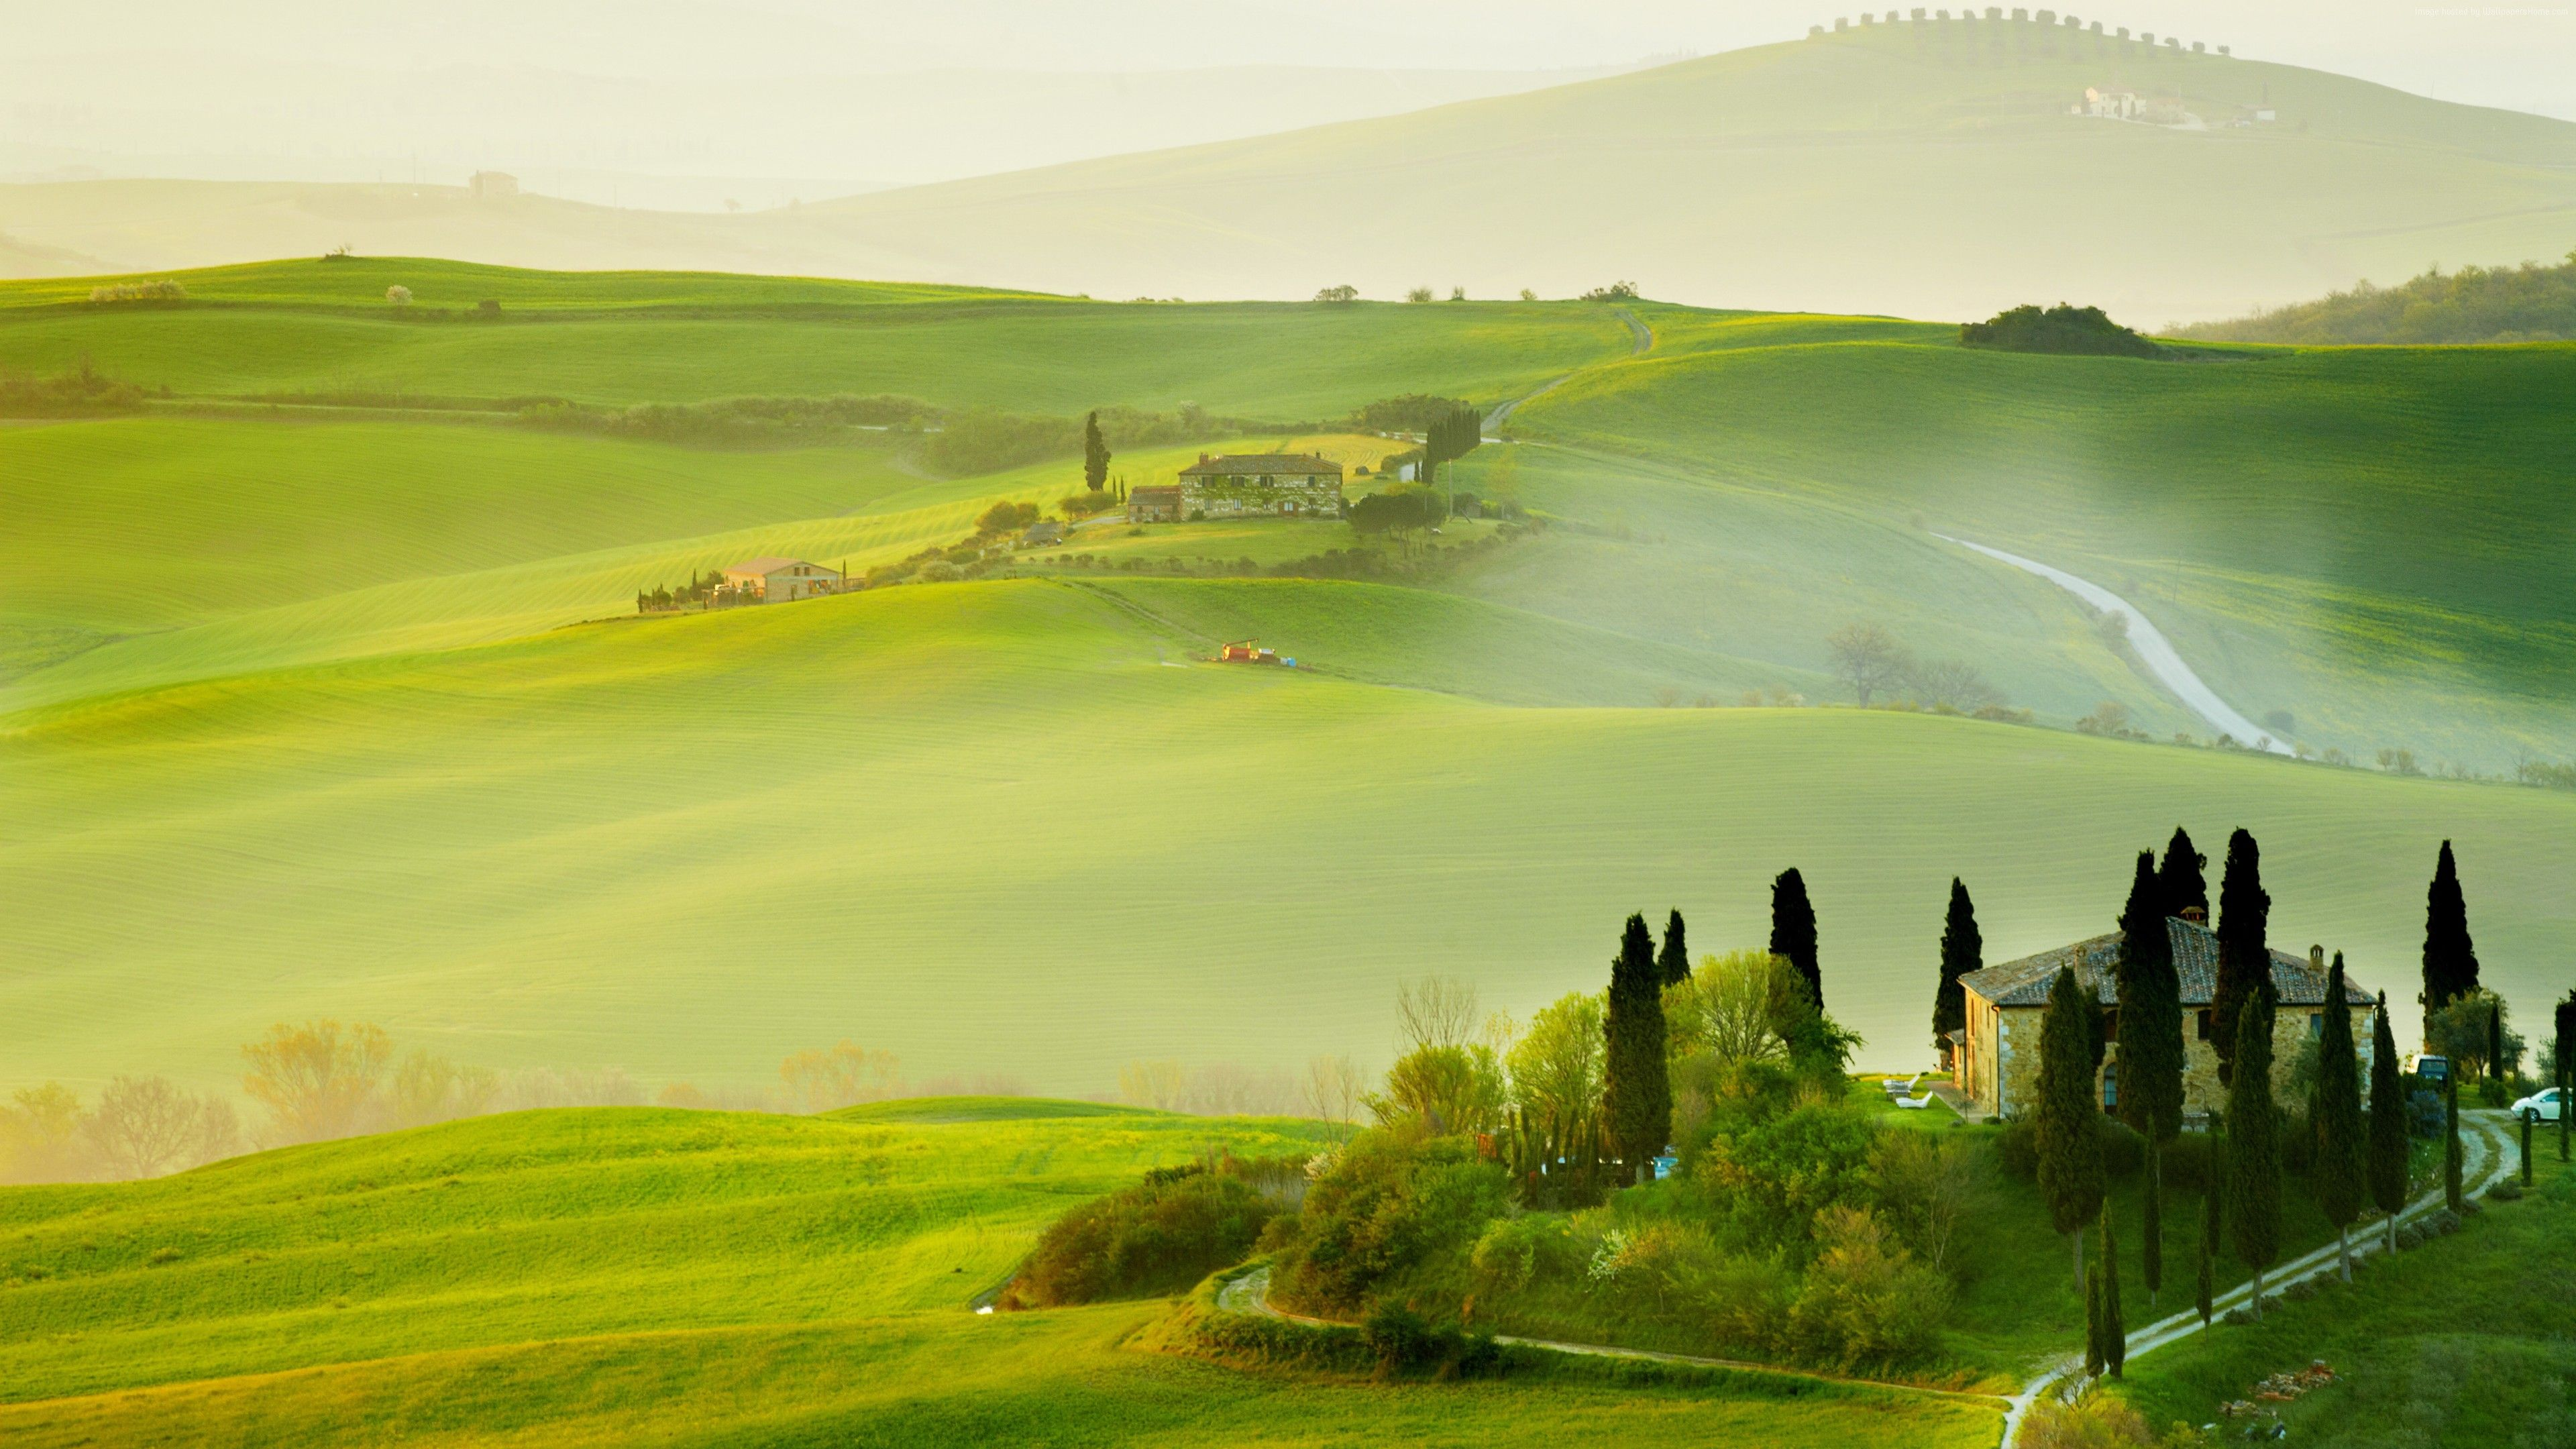 Wallpaper Tuscany Italy Europe Hills Field Fog 5k Travel With Images Landscape Wallpaper Countryside Landscape Travel Wallpaper